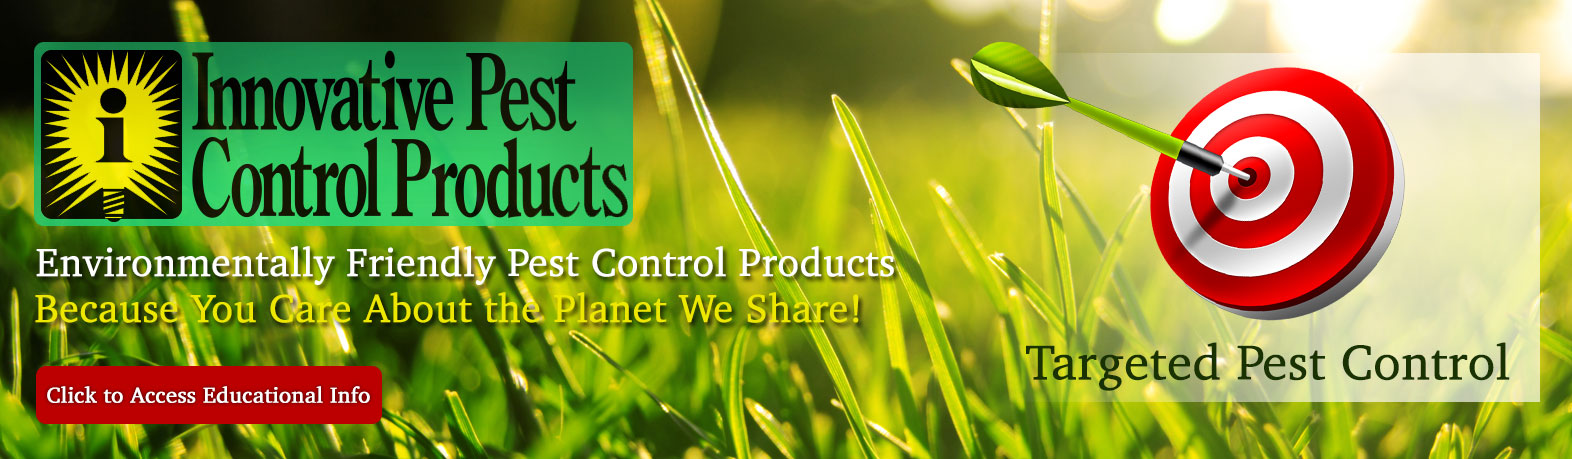 targeted pest control